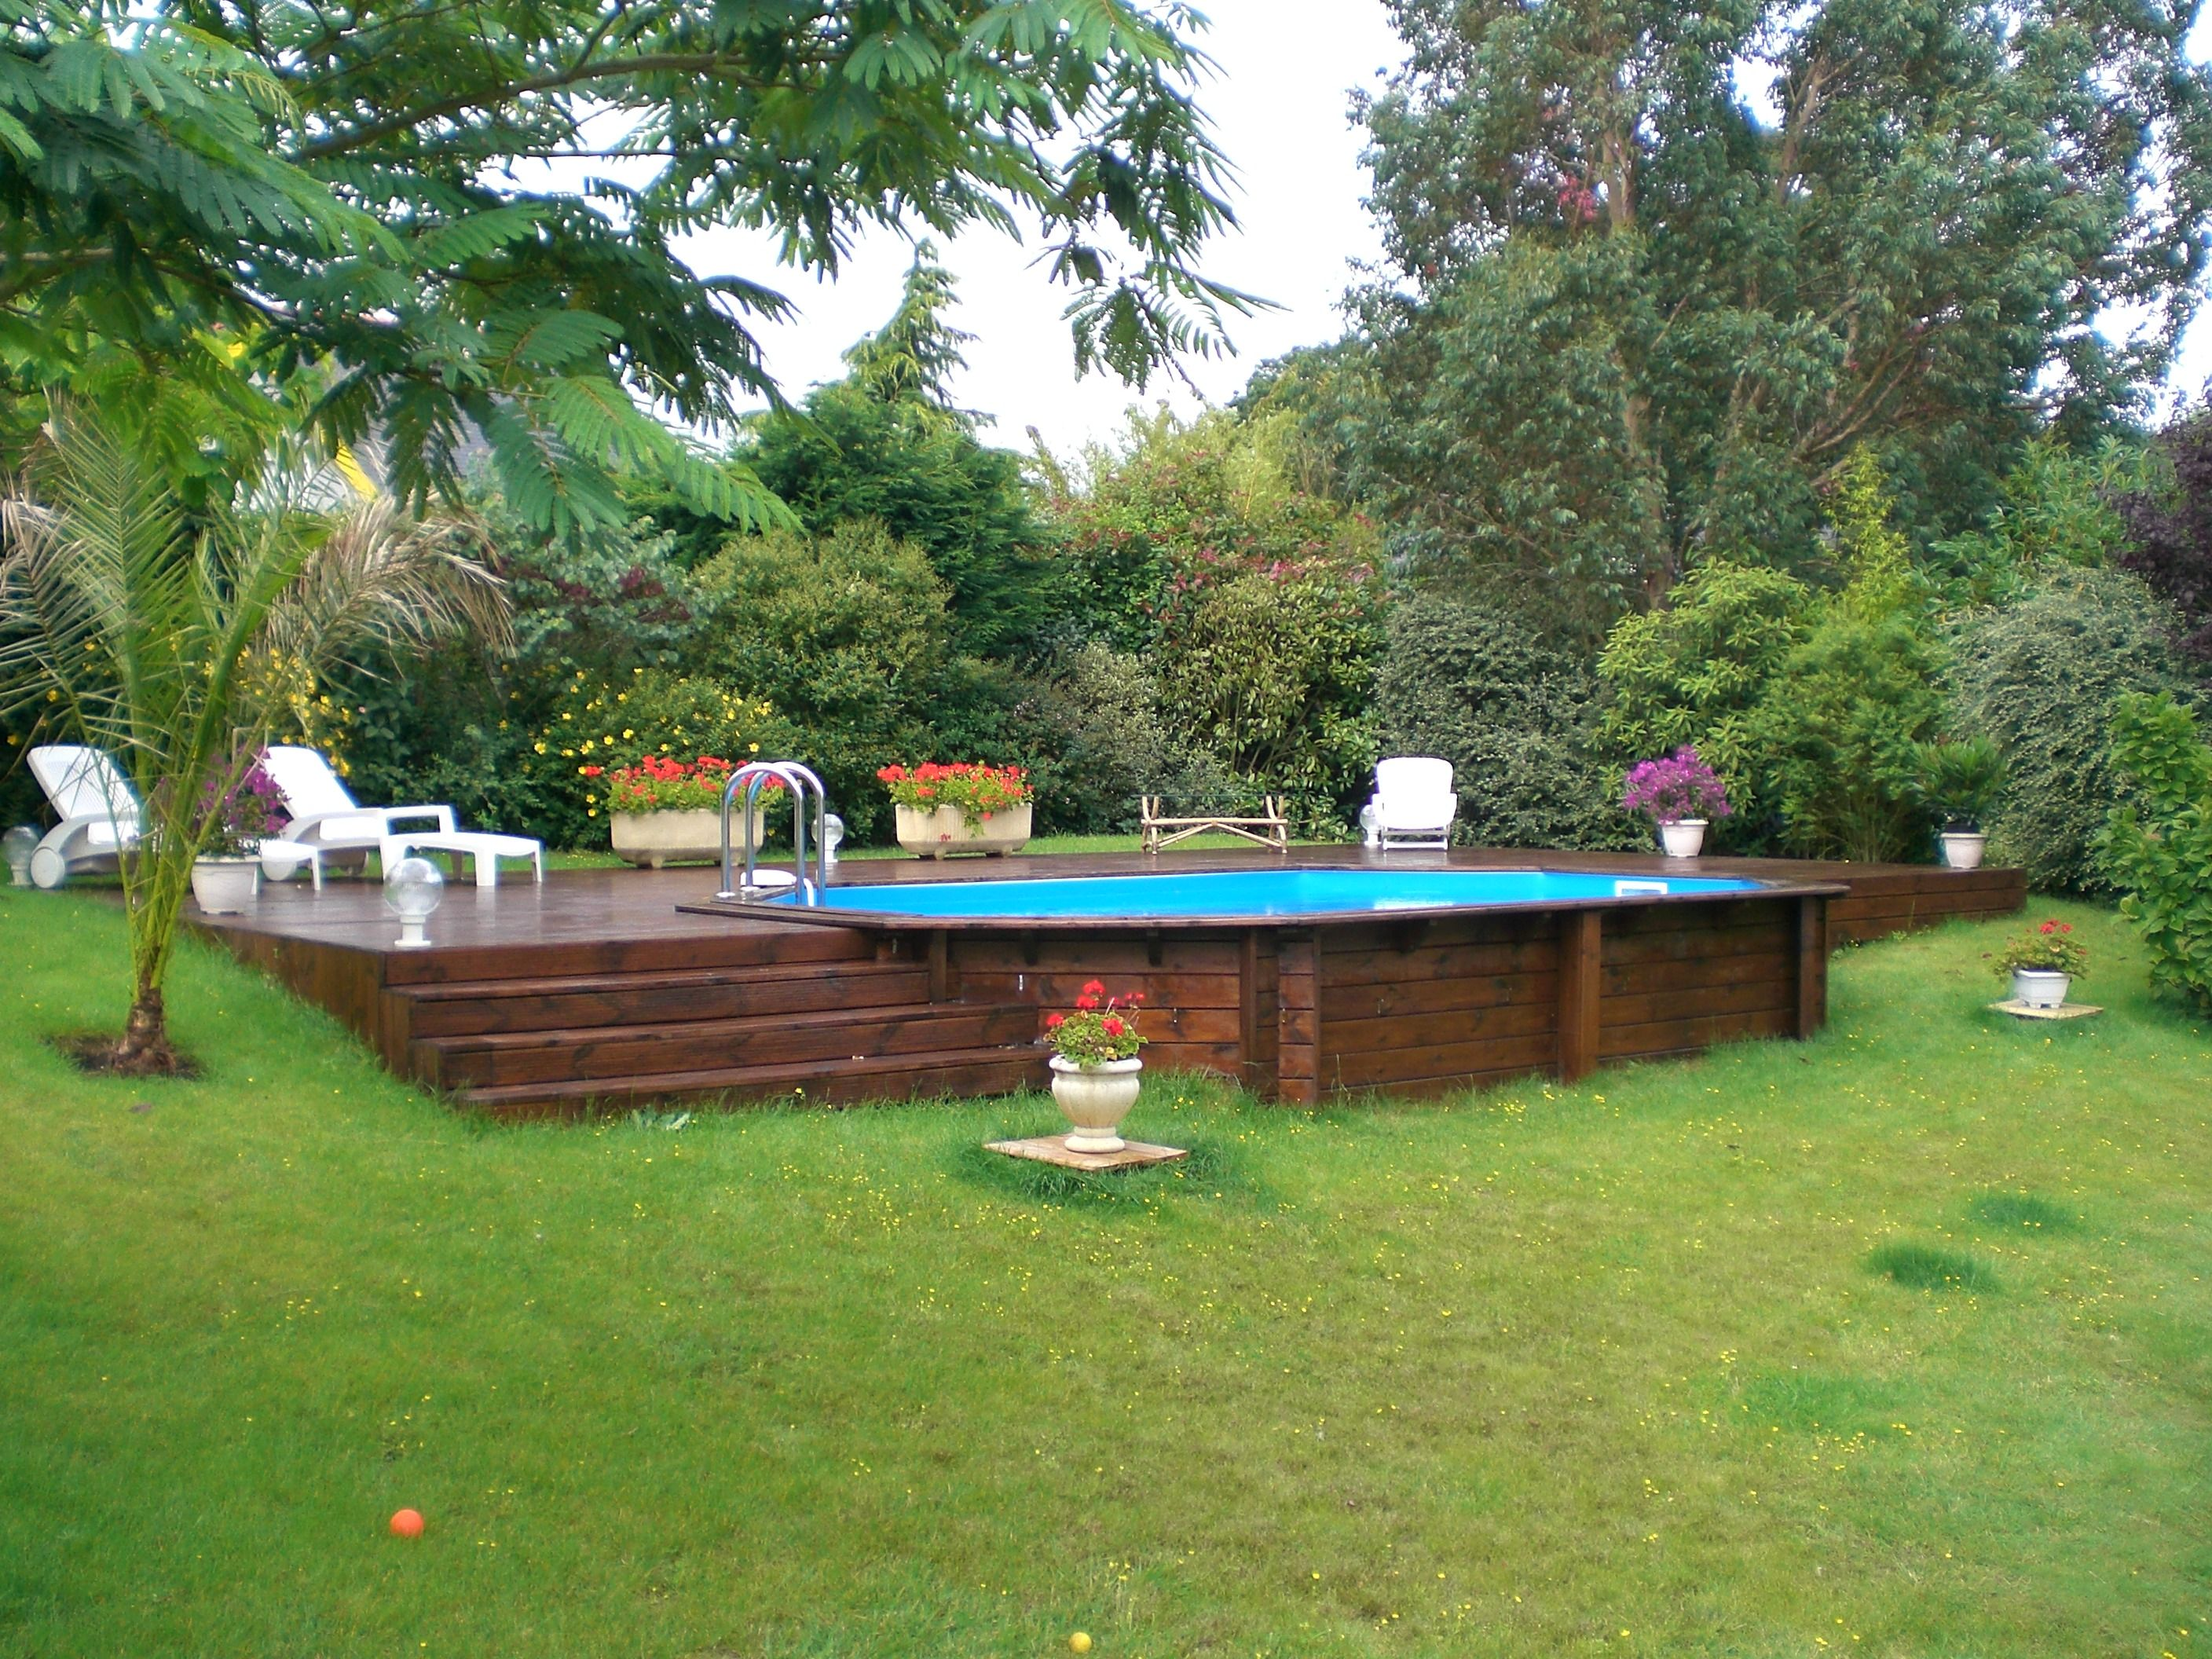 Piscine hors sol en bois semi enterr e sur terrain en for Piscine semi enterree